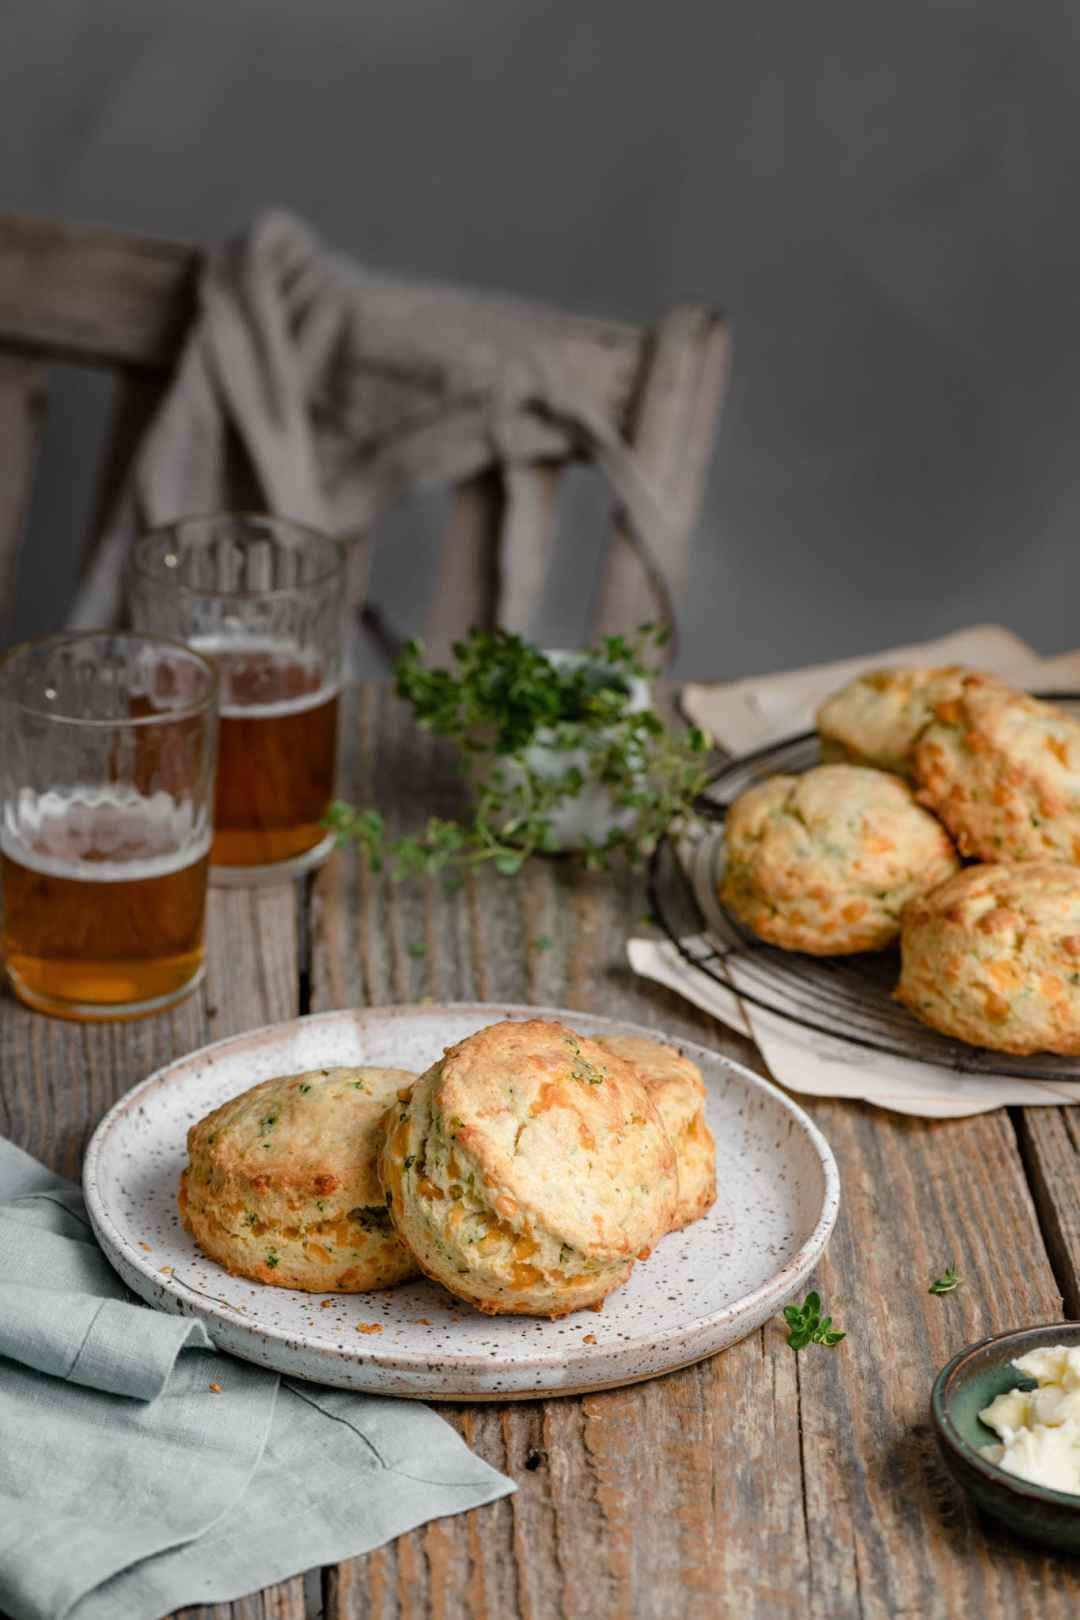 Cheddar and chives scone recipe with fresh herbs.